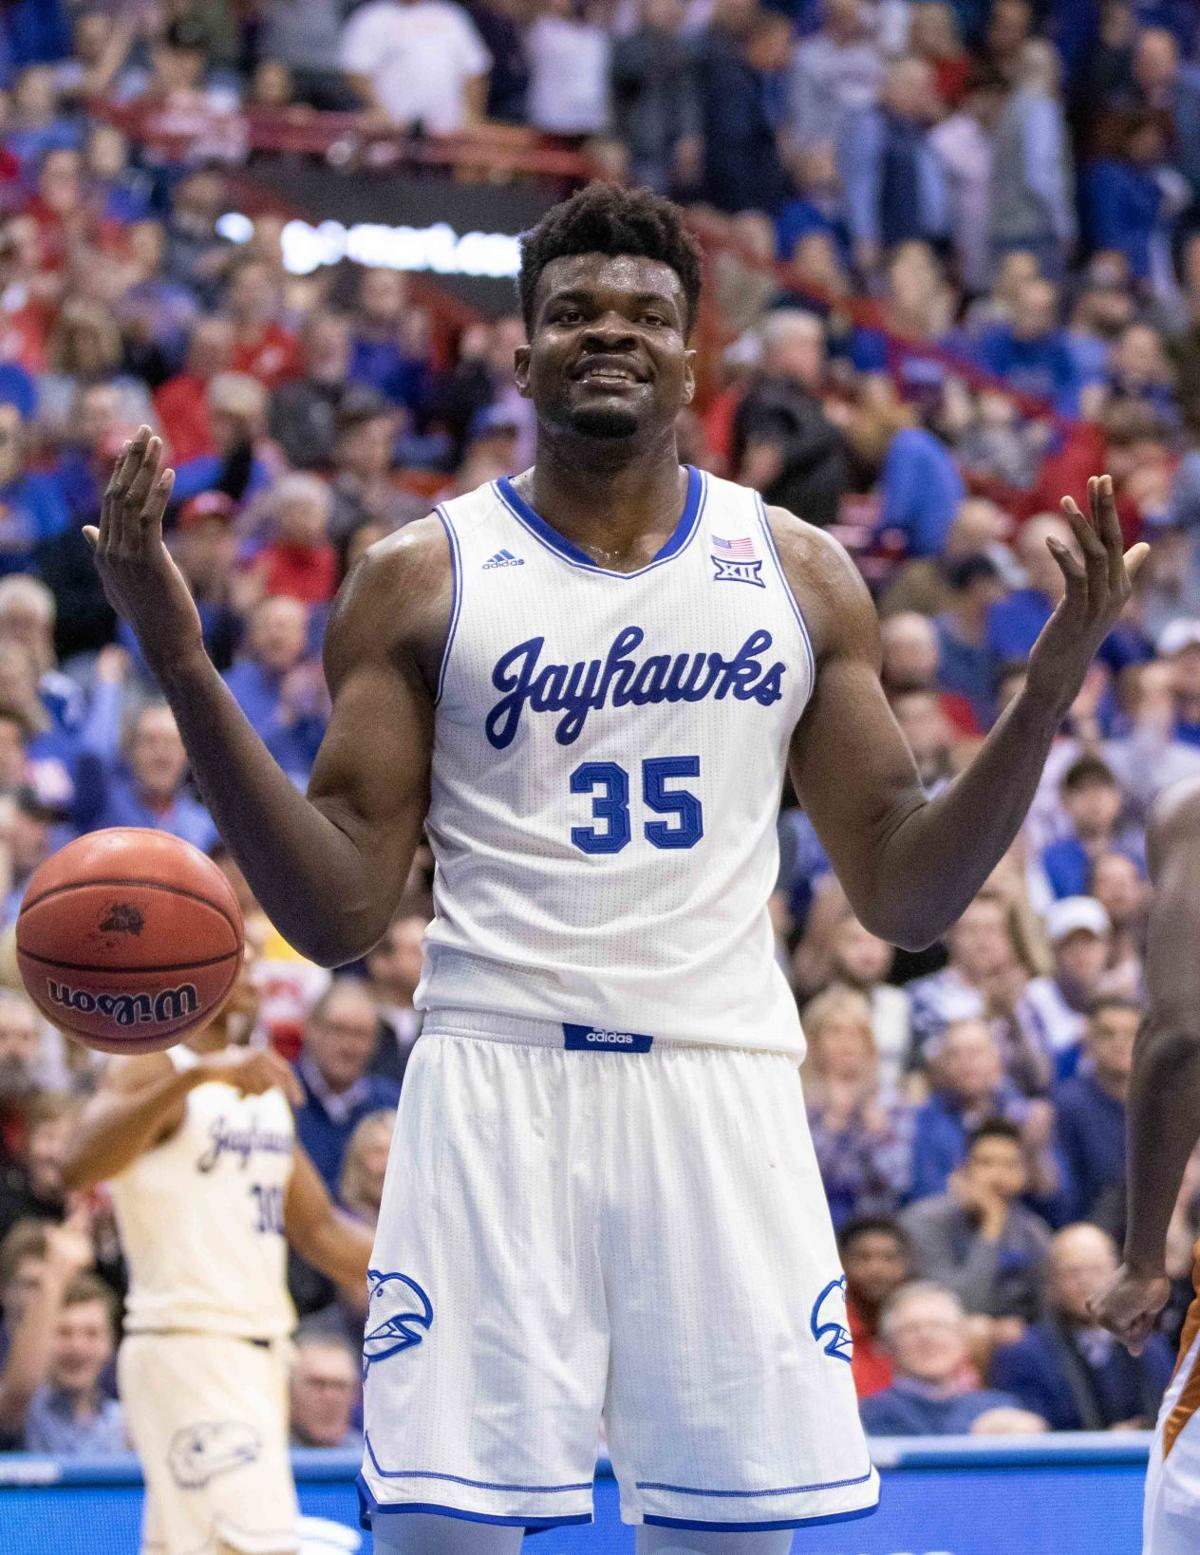 Brandishing a smile, Udoka Azubuike holds his hands in the air while the ball dribbles out to his side